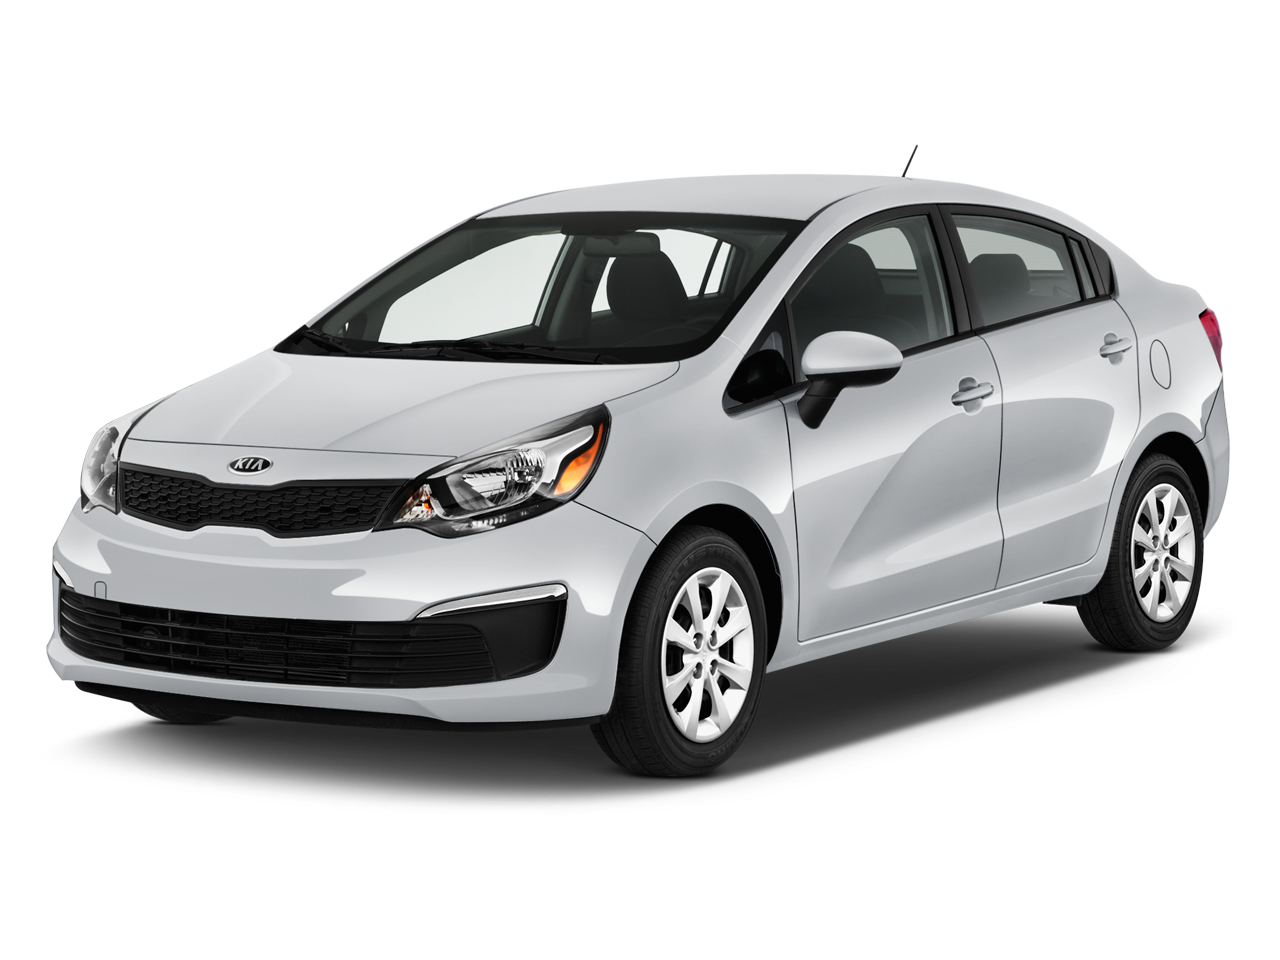 new 2017 kia rio lx near mooresville nc keffer kia. Black Bedroom Furniture Sets. Home Design Ideas